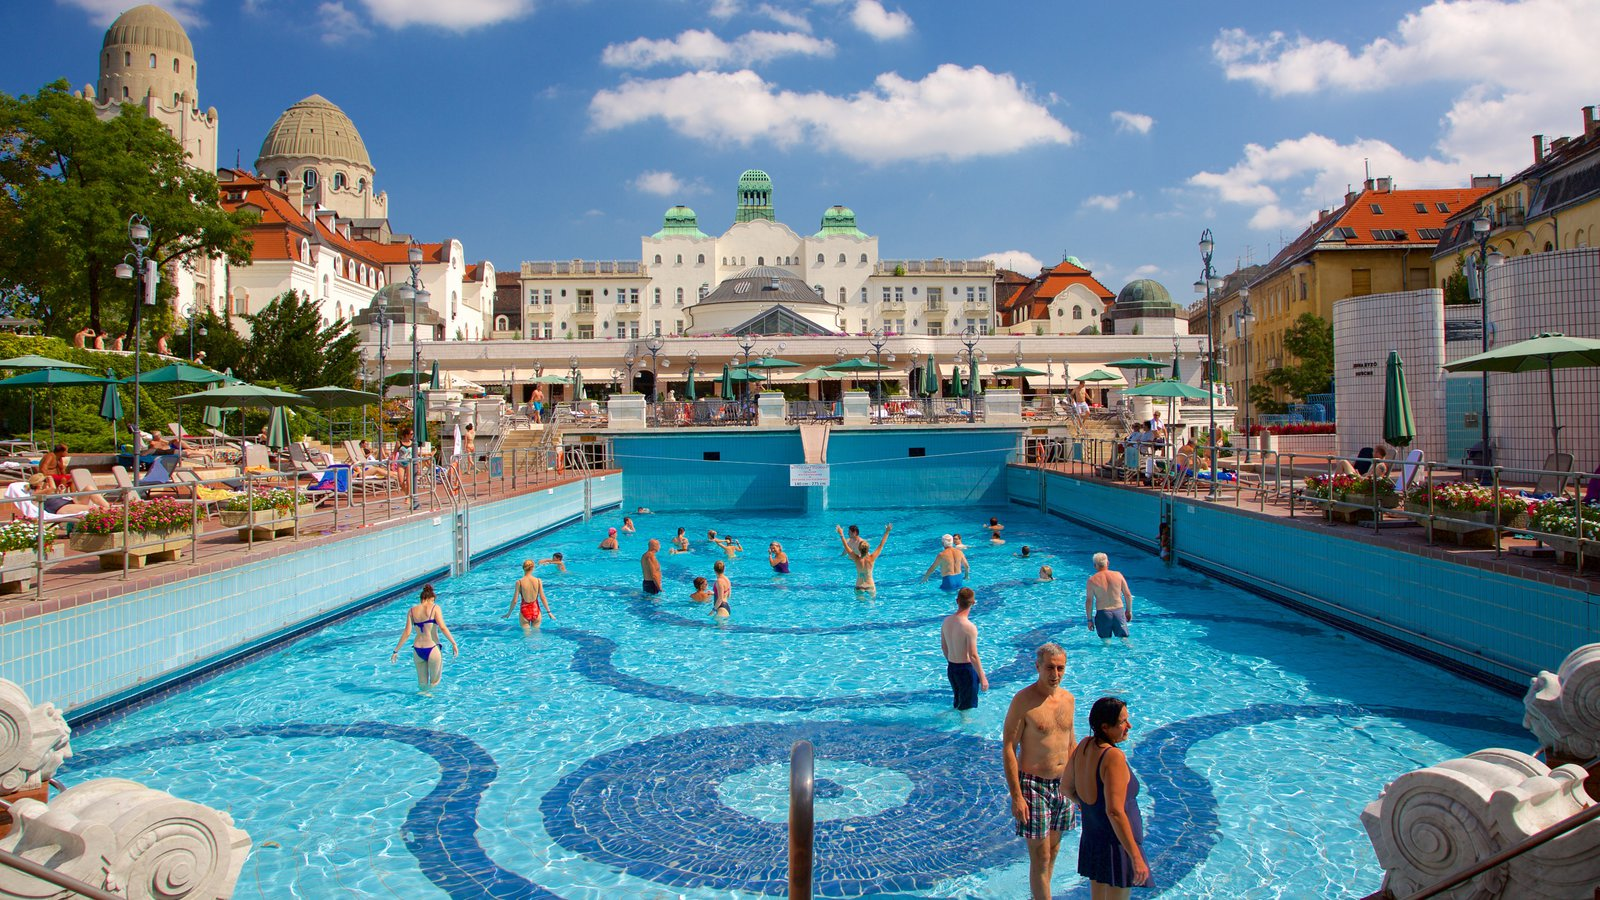 Gellert Thermal Baths And Swimming Pool Showing A Luxury Hotel Or Resort As